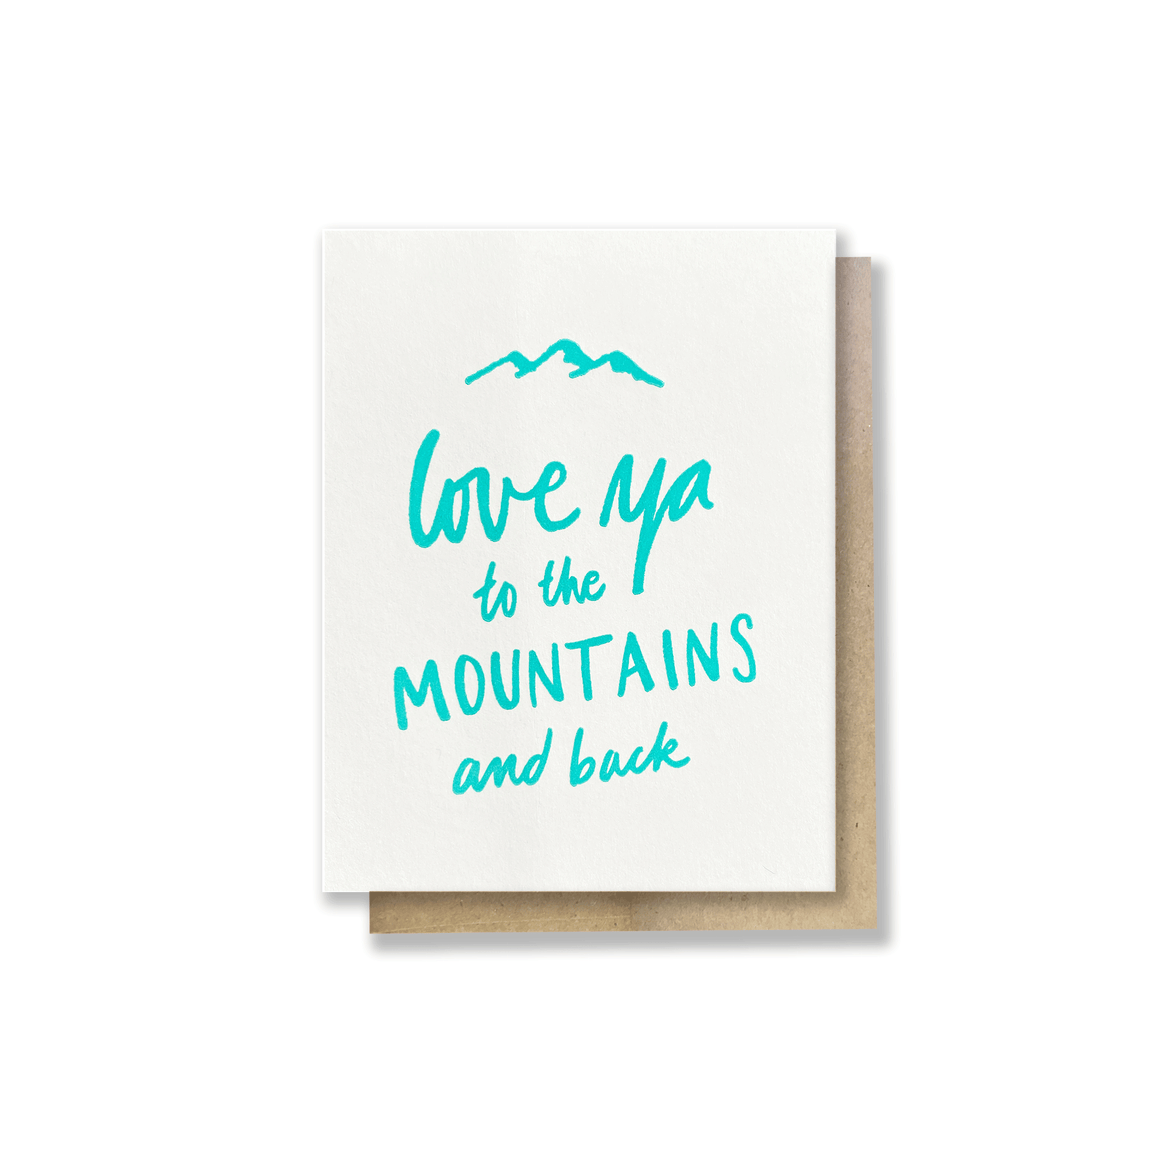 To the Mountains Card